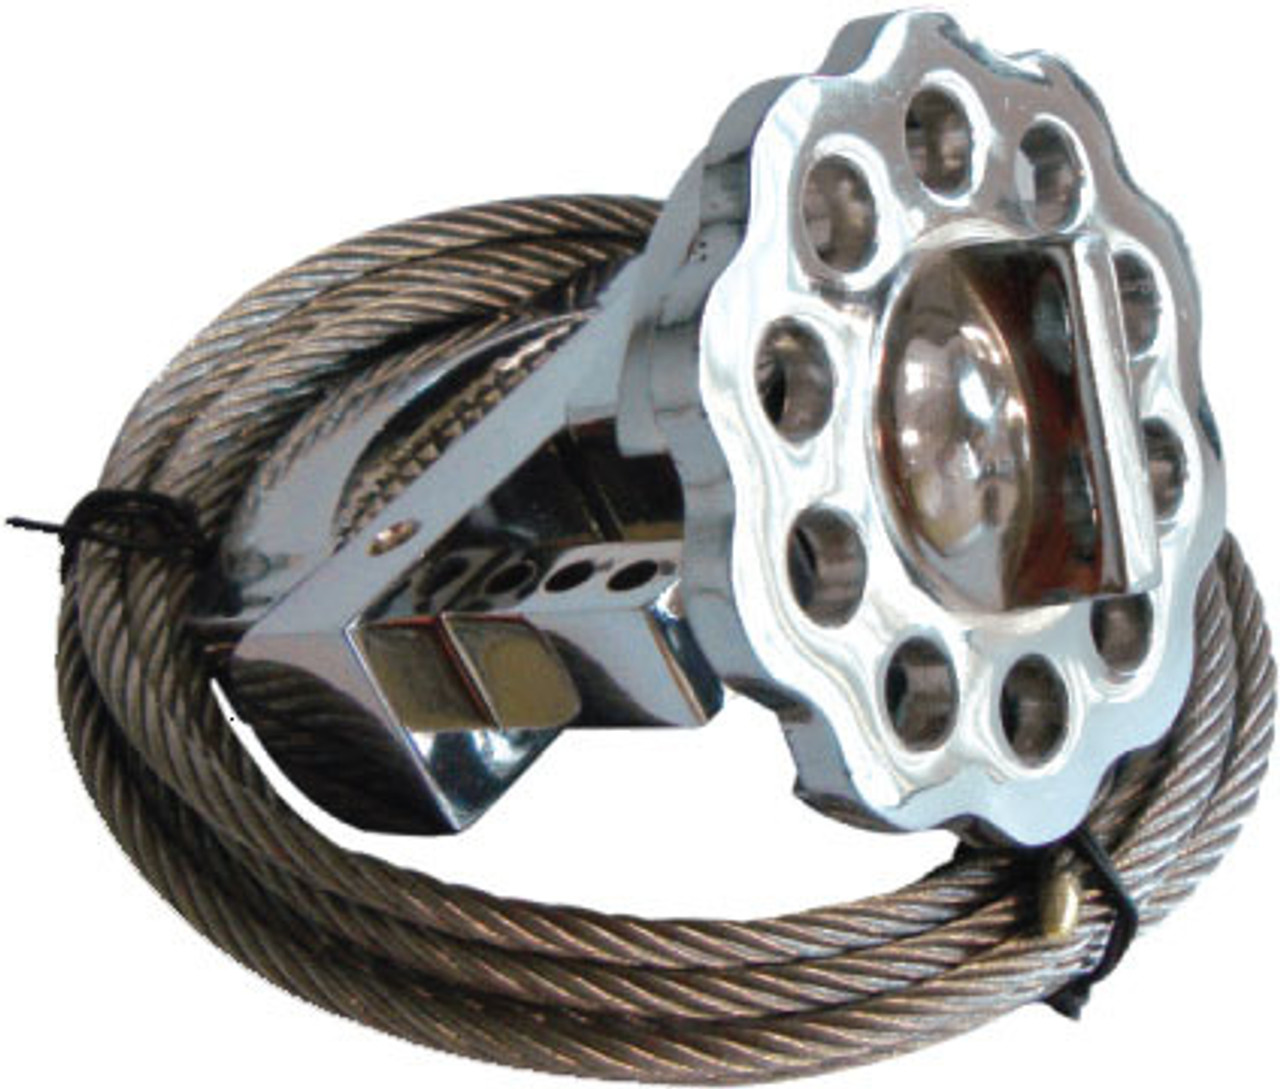 Metallic Multipurpose Cable Lockout 5 Meters Stainless Steel Cable PS-LOTO-MCLS